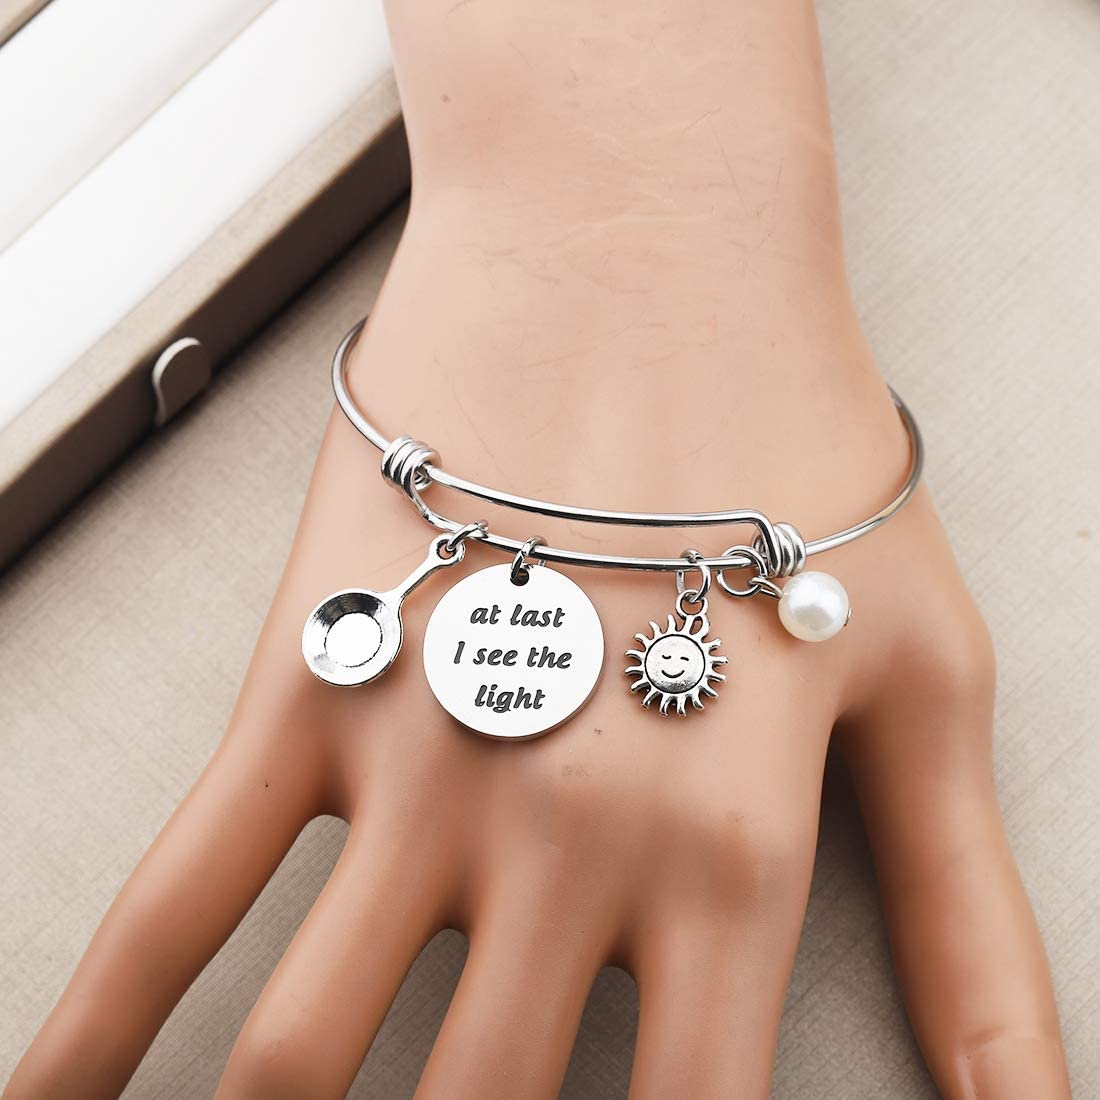 CHOORO Tangled Quote Bracelet at Last I See The Light Inspirational Inspired Jewelry Gift